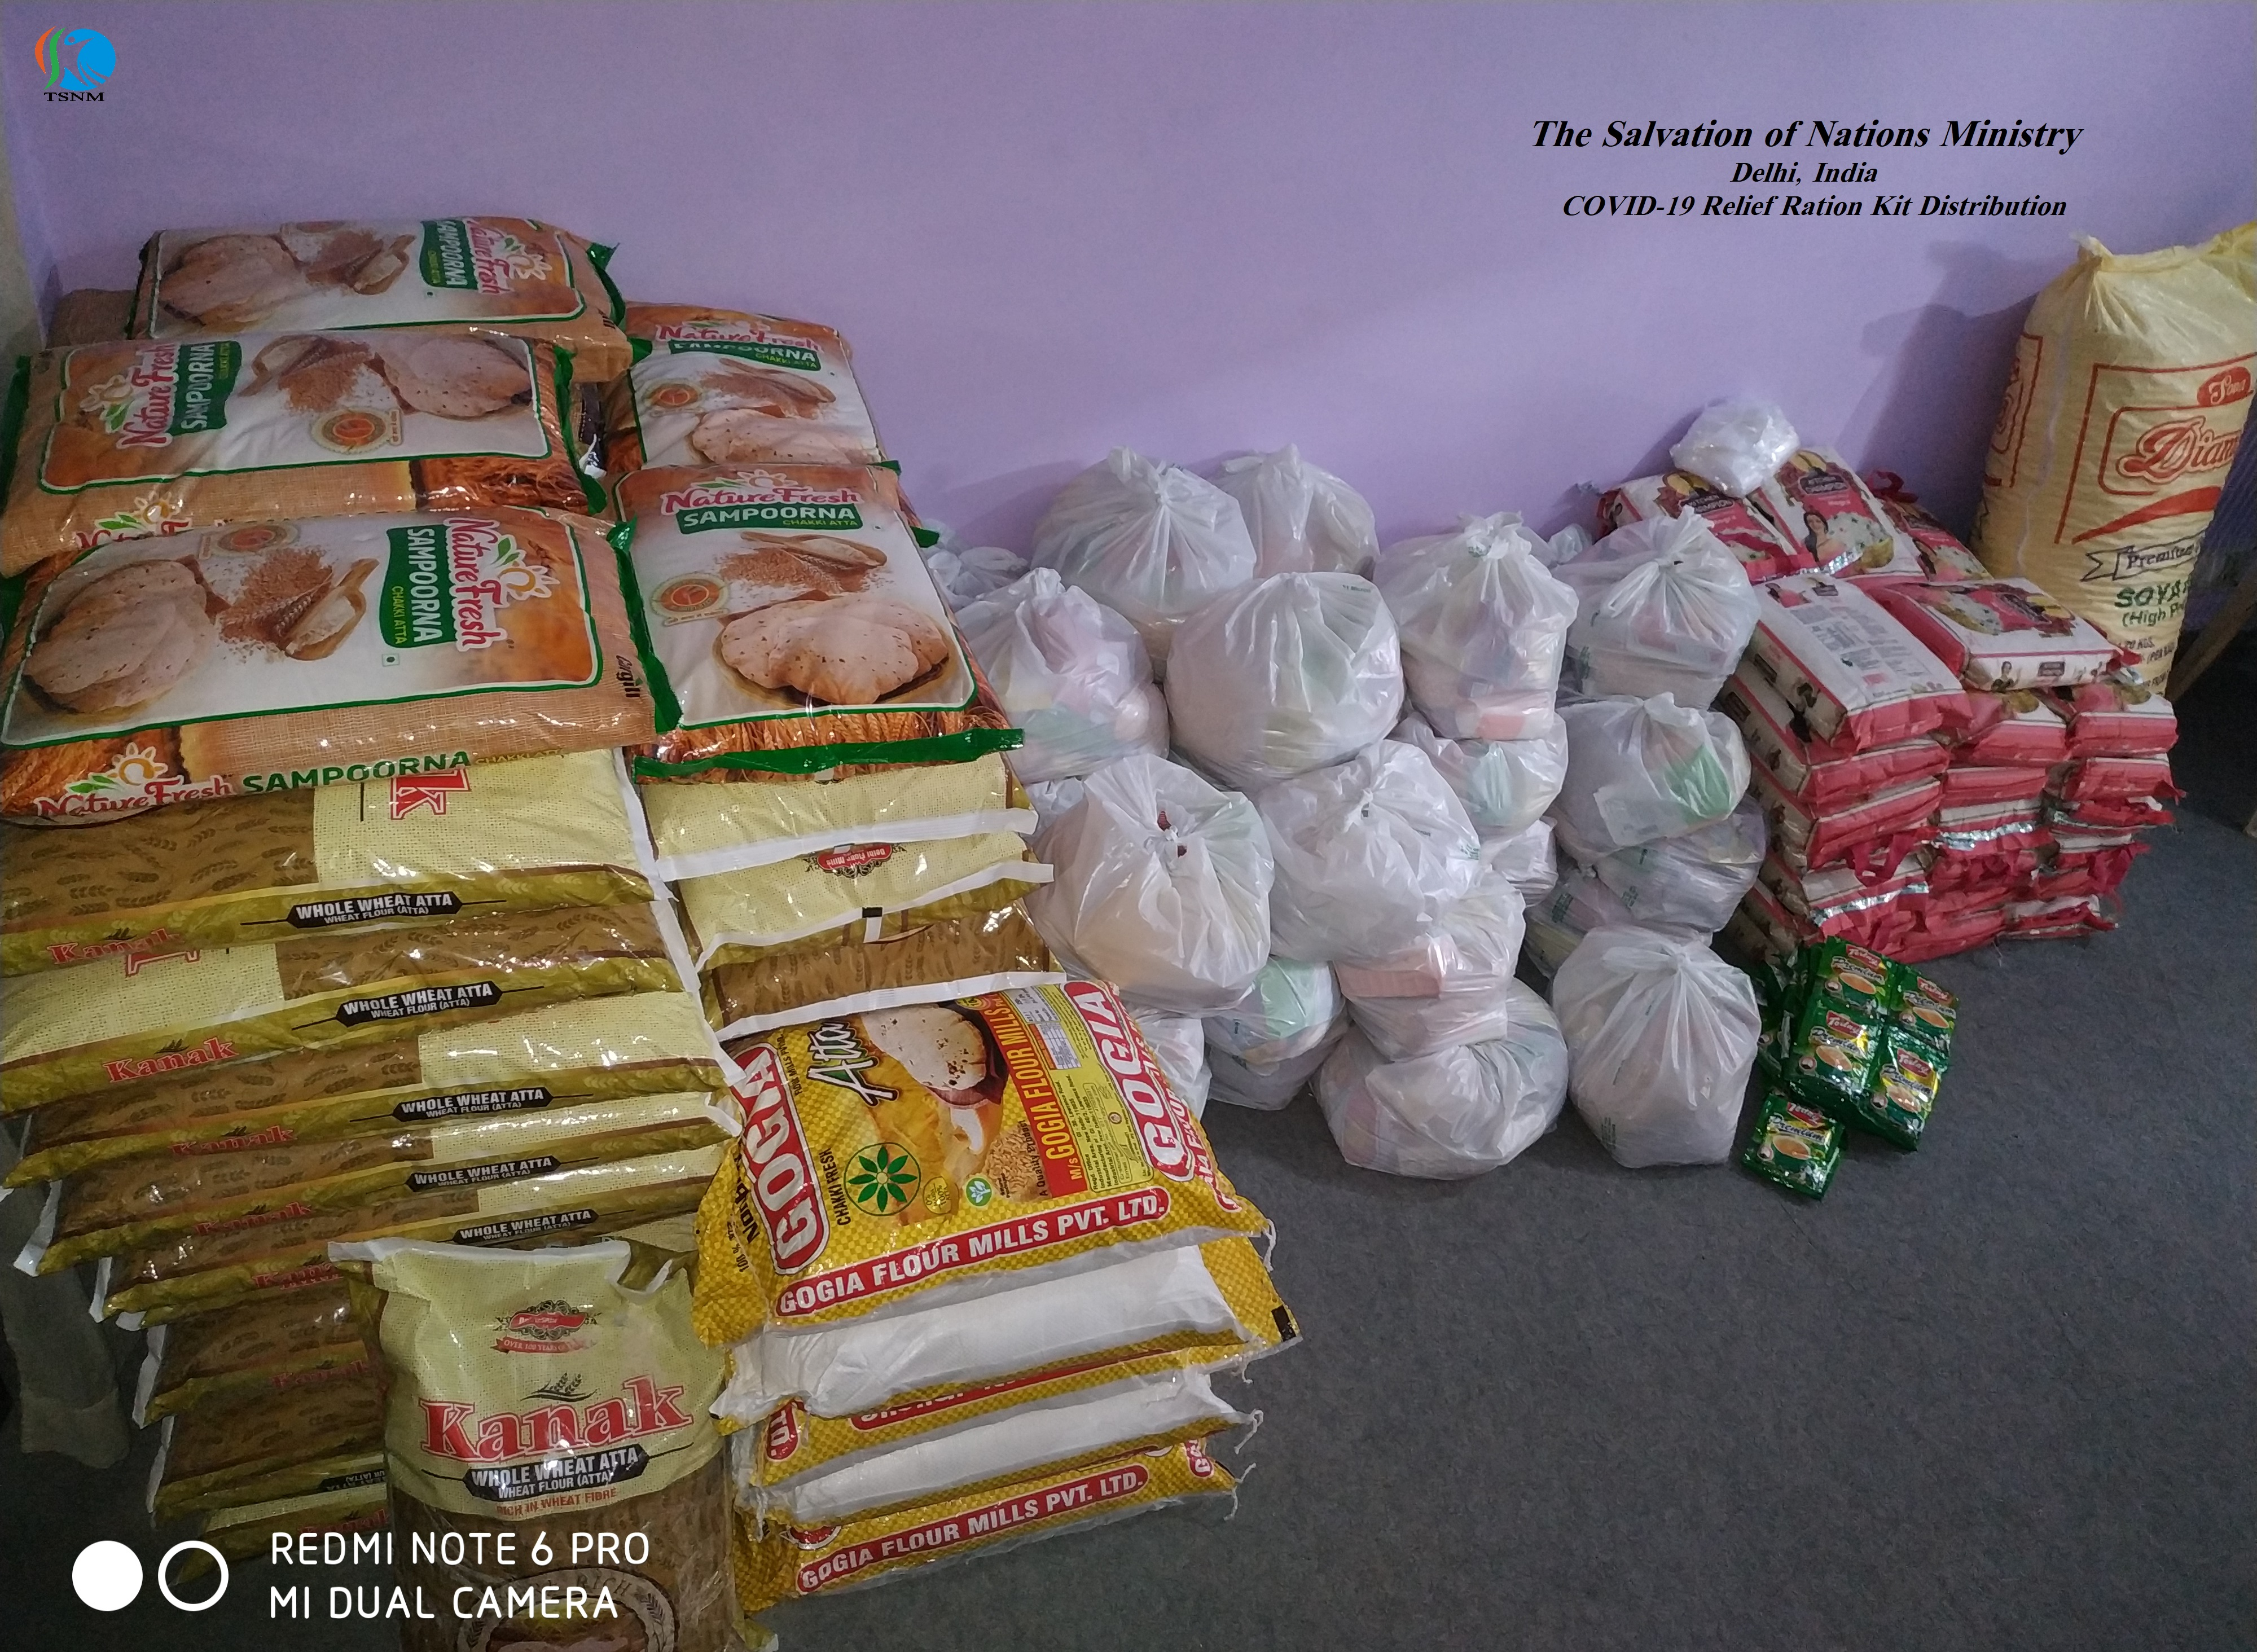 COVID-19 Relief Ration Distribution